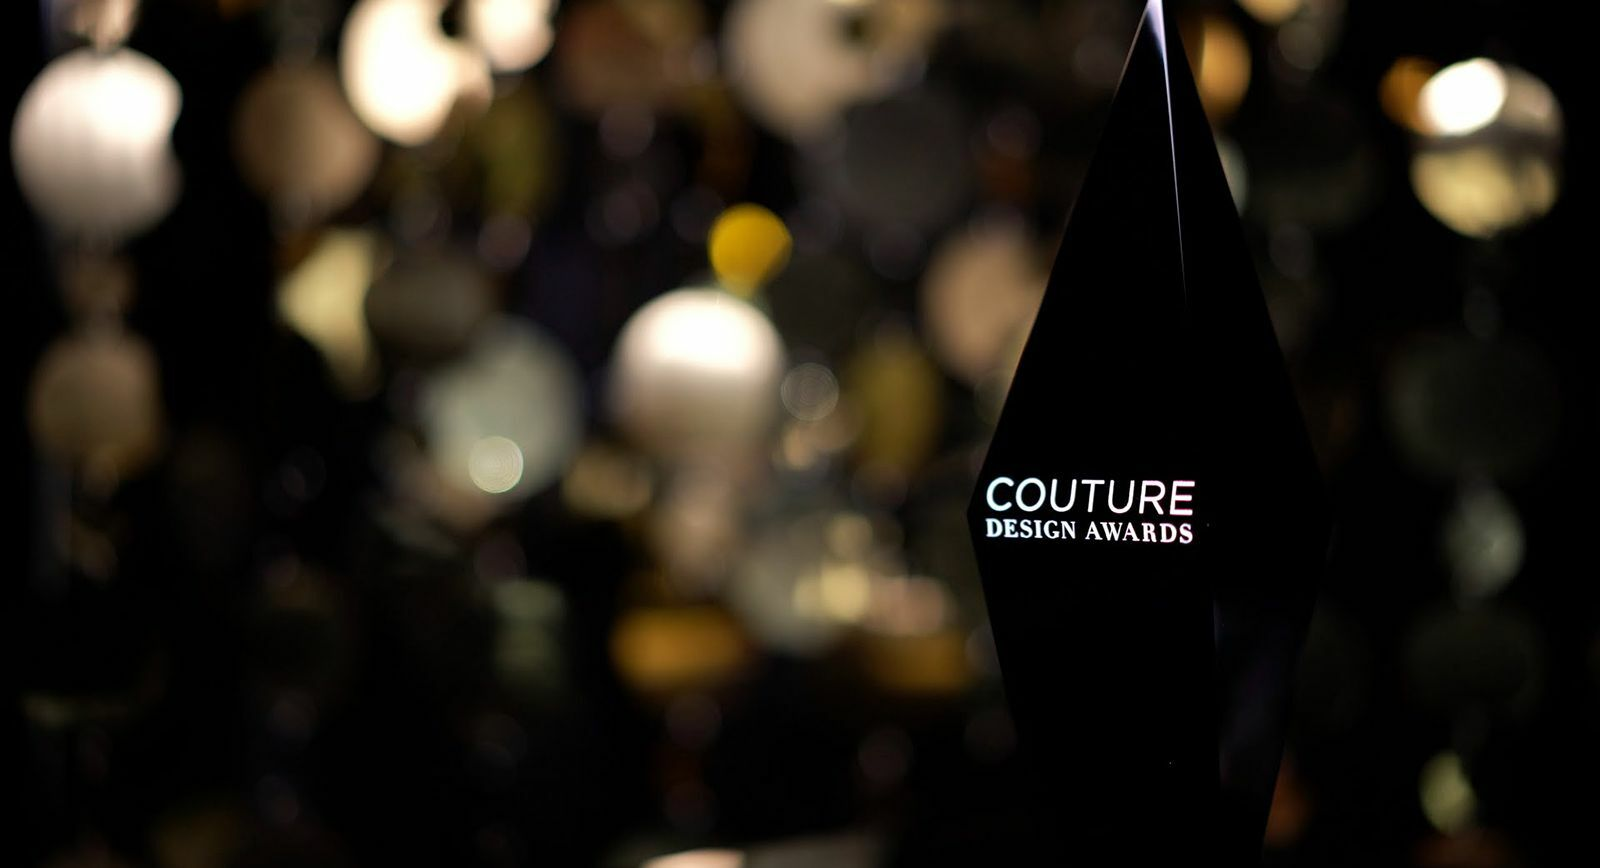 The Couture Design Awards: A First-Hand Perspective